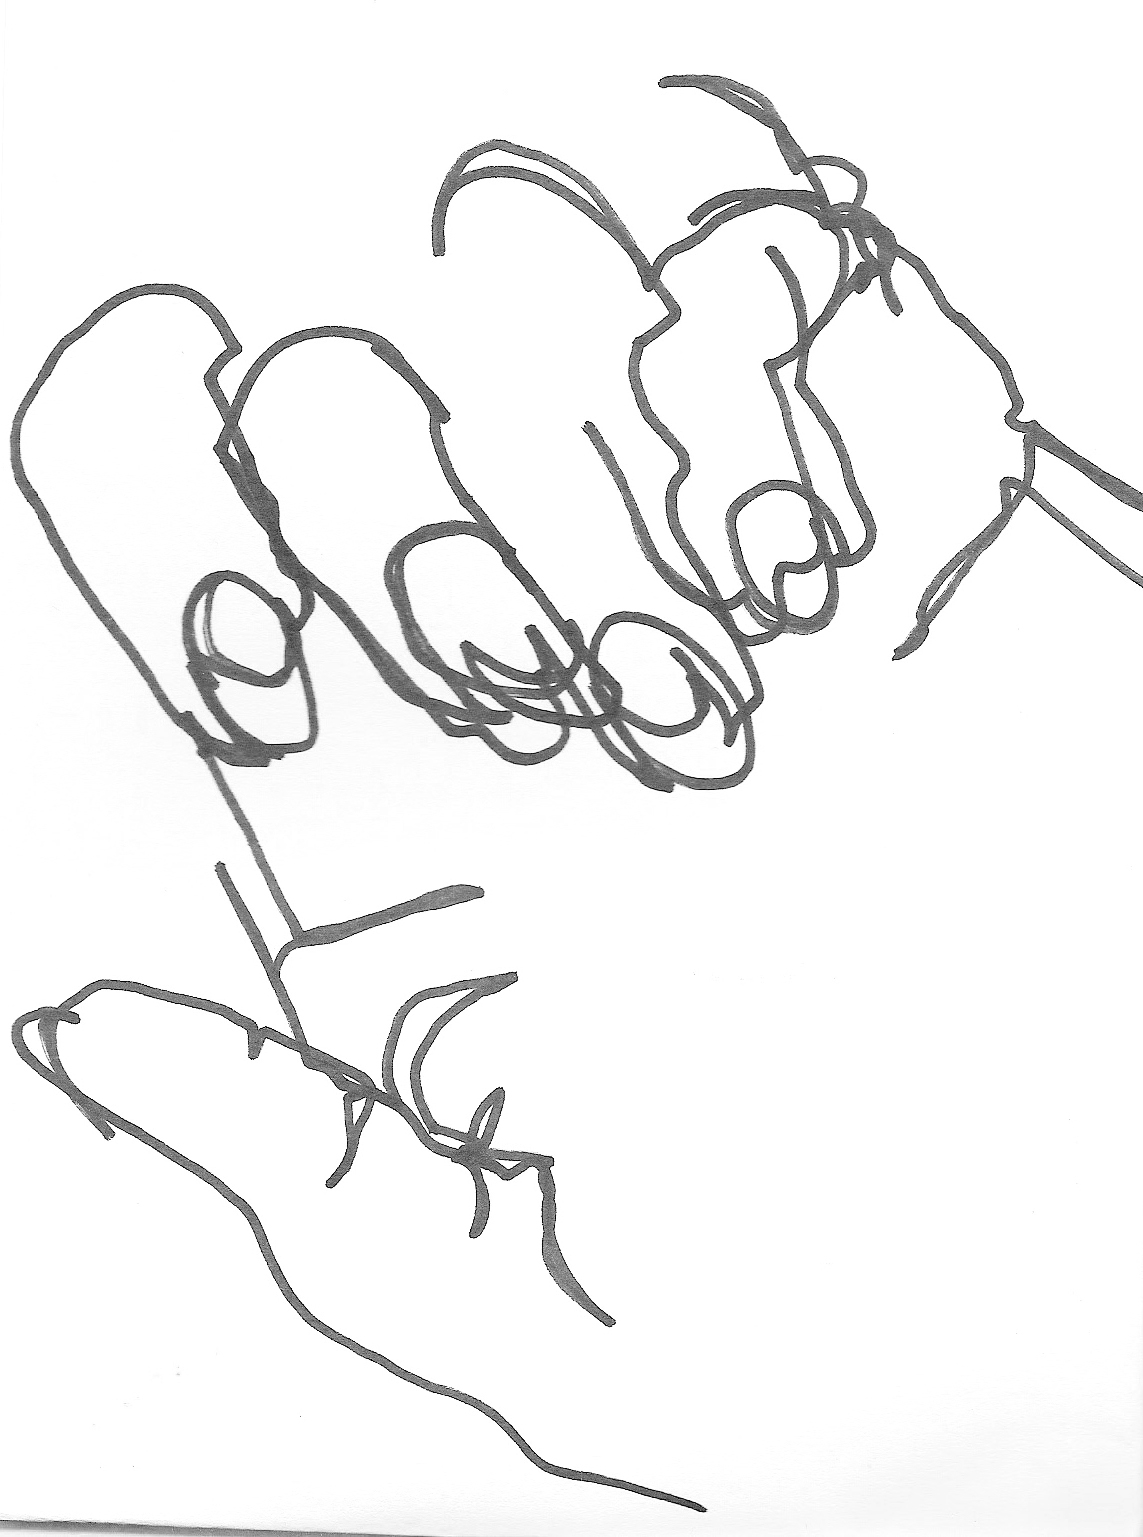 Blind Contour Drawing - Lessons - Tes Teach